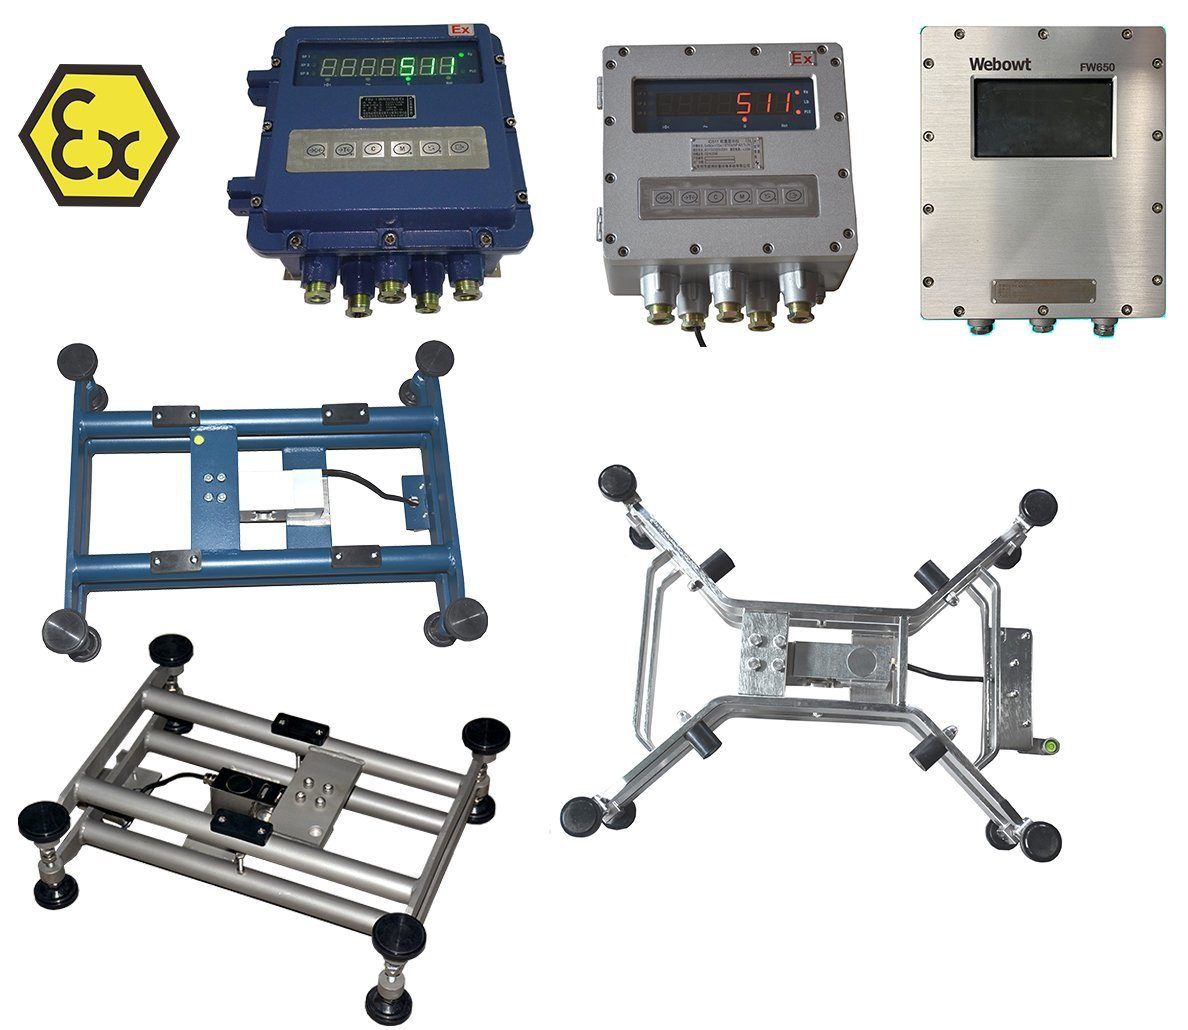 Intrinsically Safe Explosion-Proof Electronic Scale